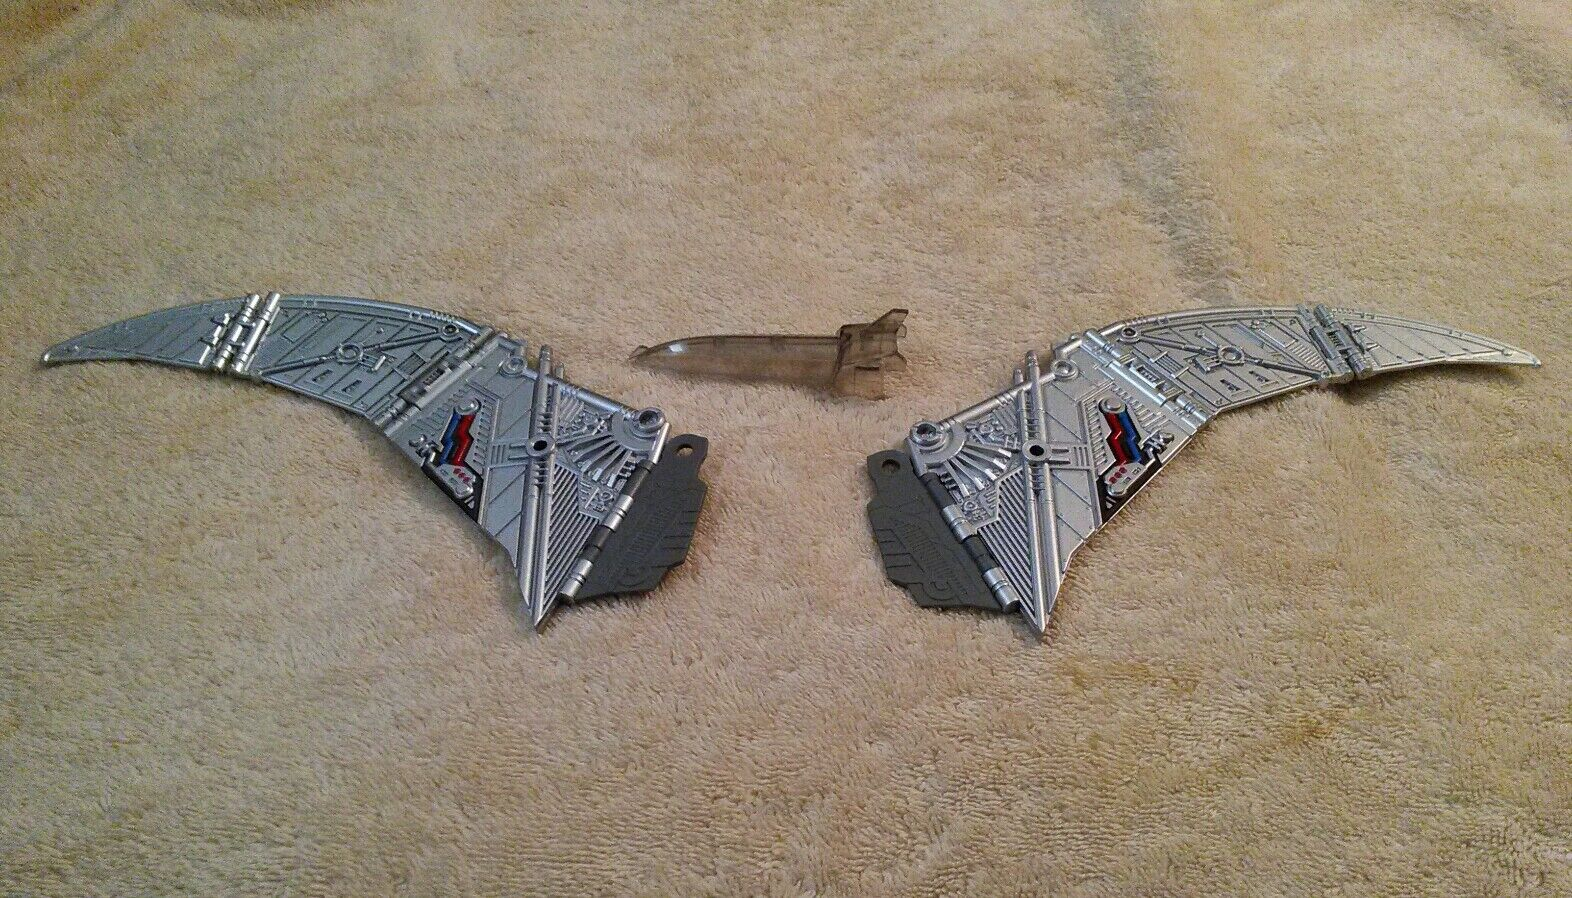 Transformers Fans Toys MP FT-05 Soar Swoops Metallic Grey Wing's and Clear Beak